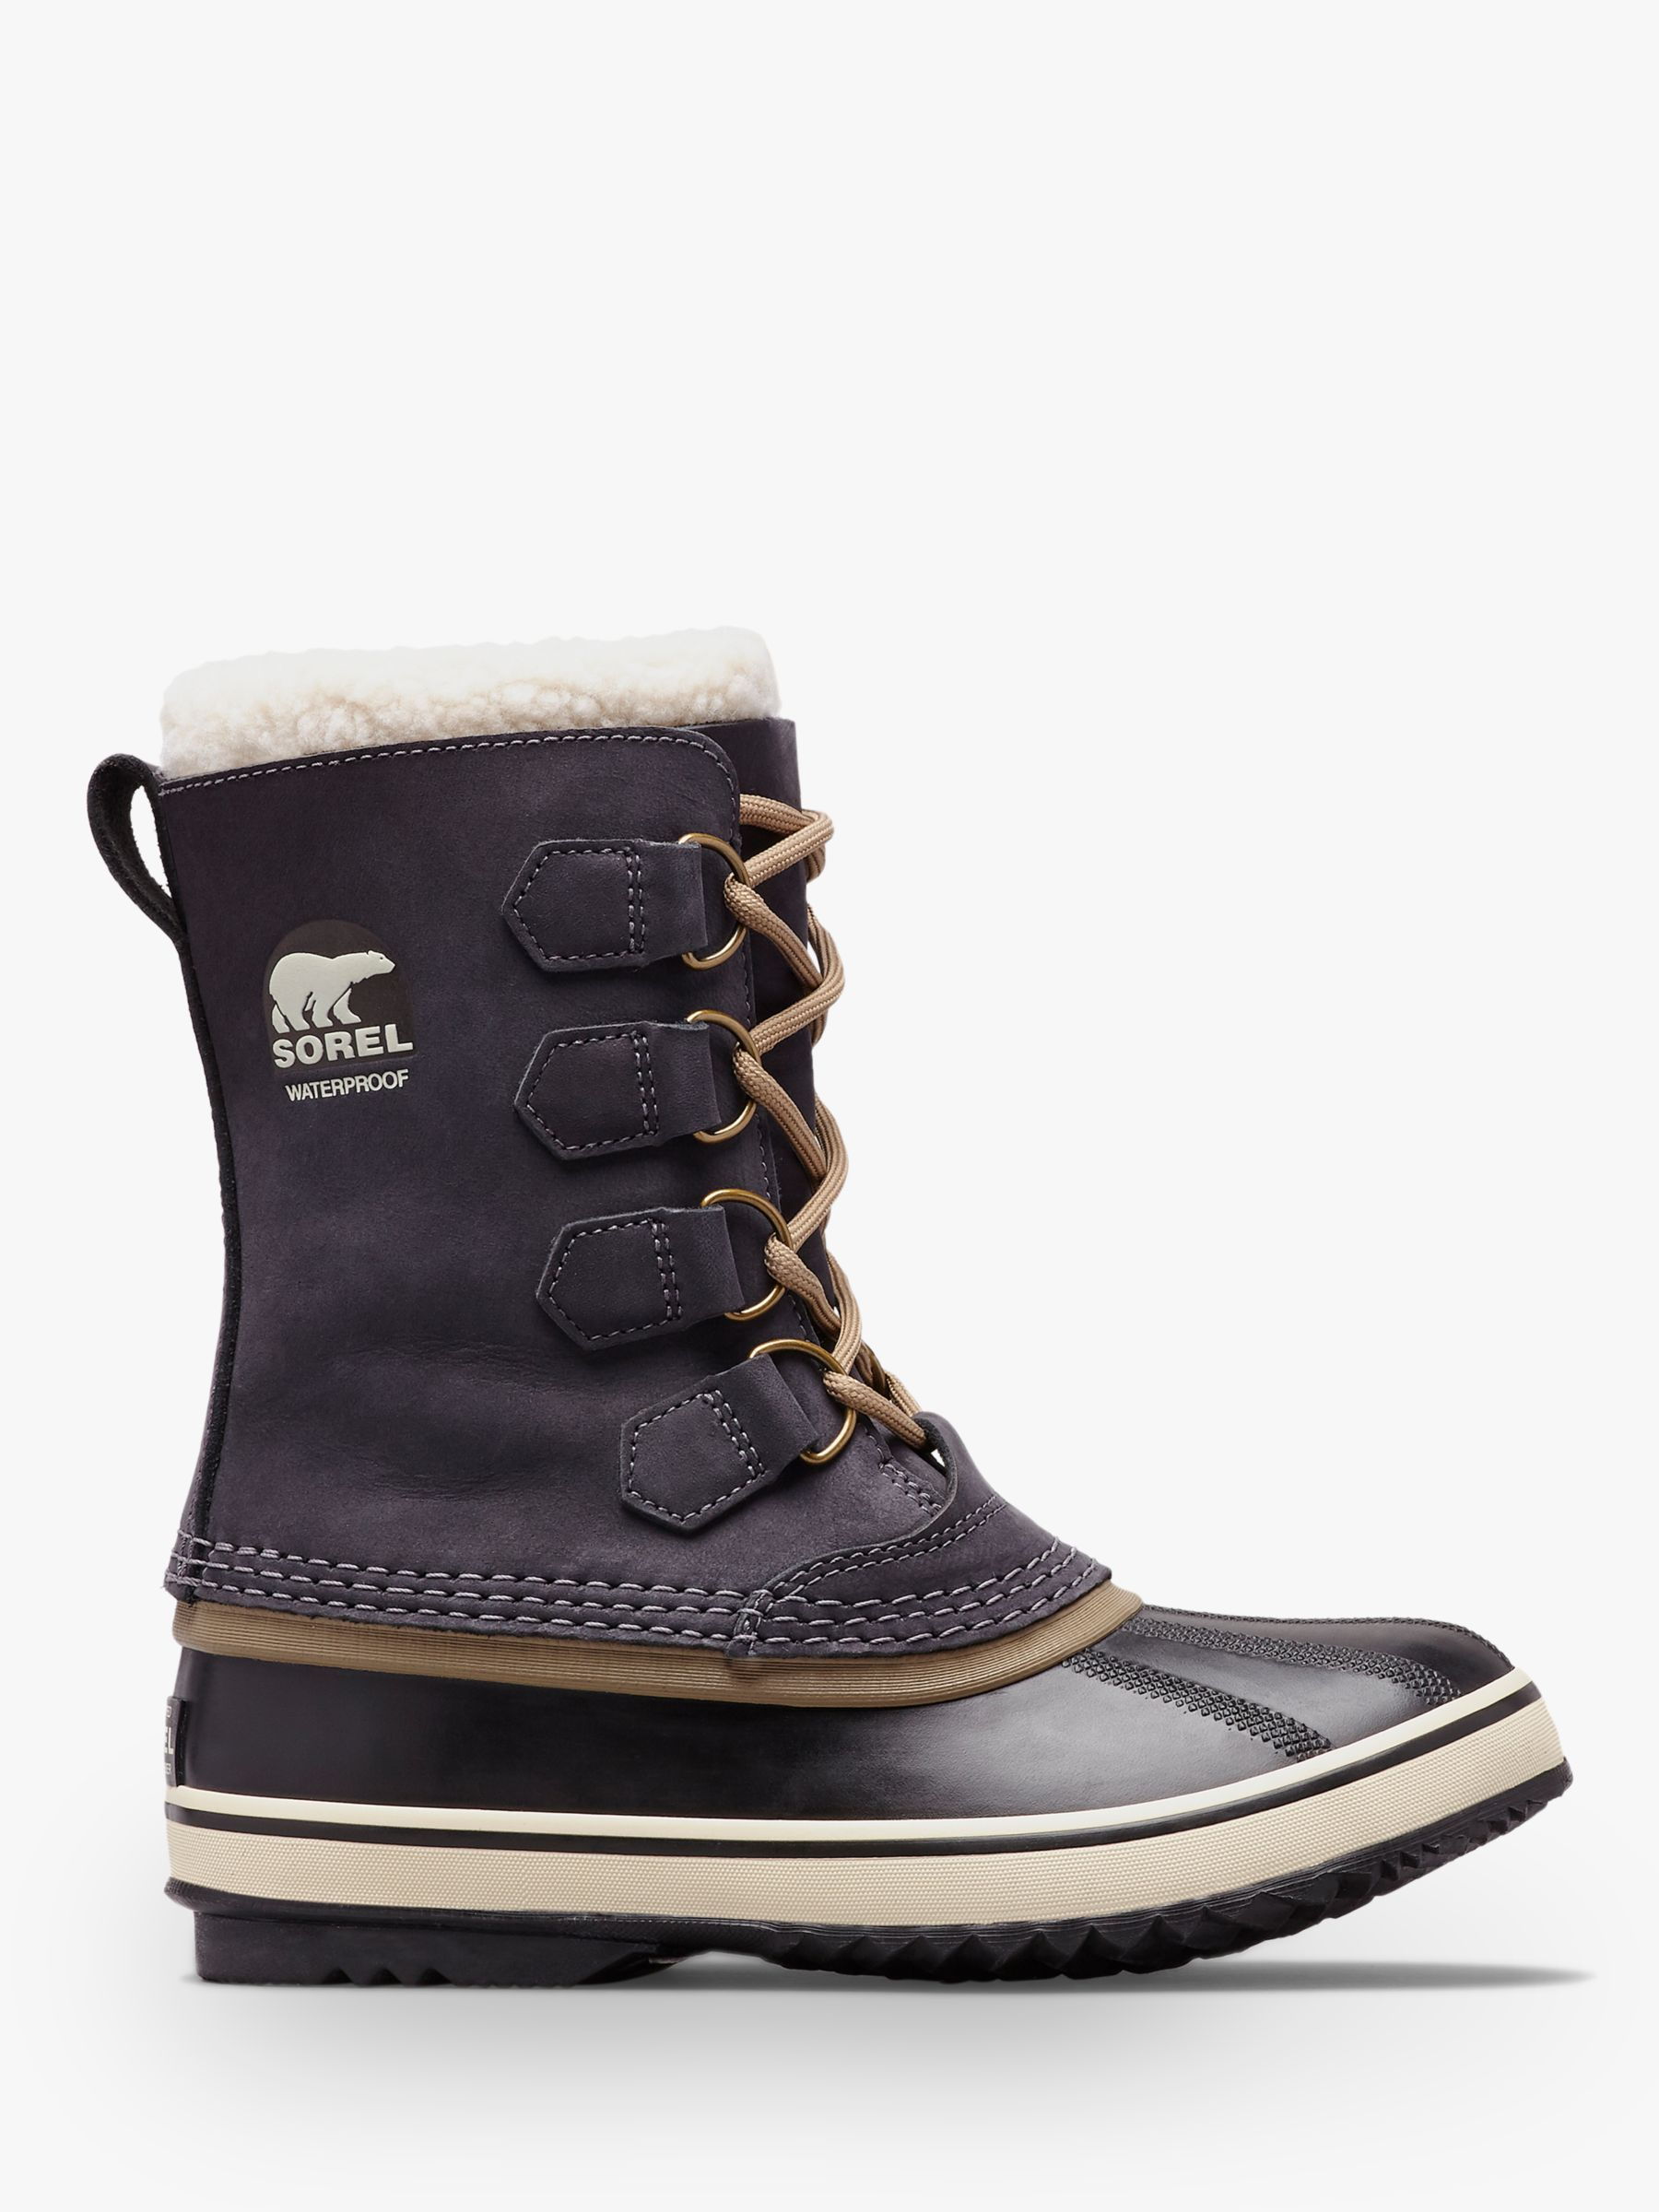 most fashionable latest design best online Sorel PAC2 Lace Up Waterproof Ankle Snow Boots, Black Leather